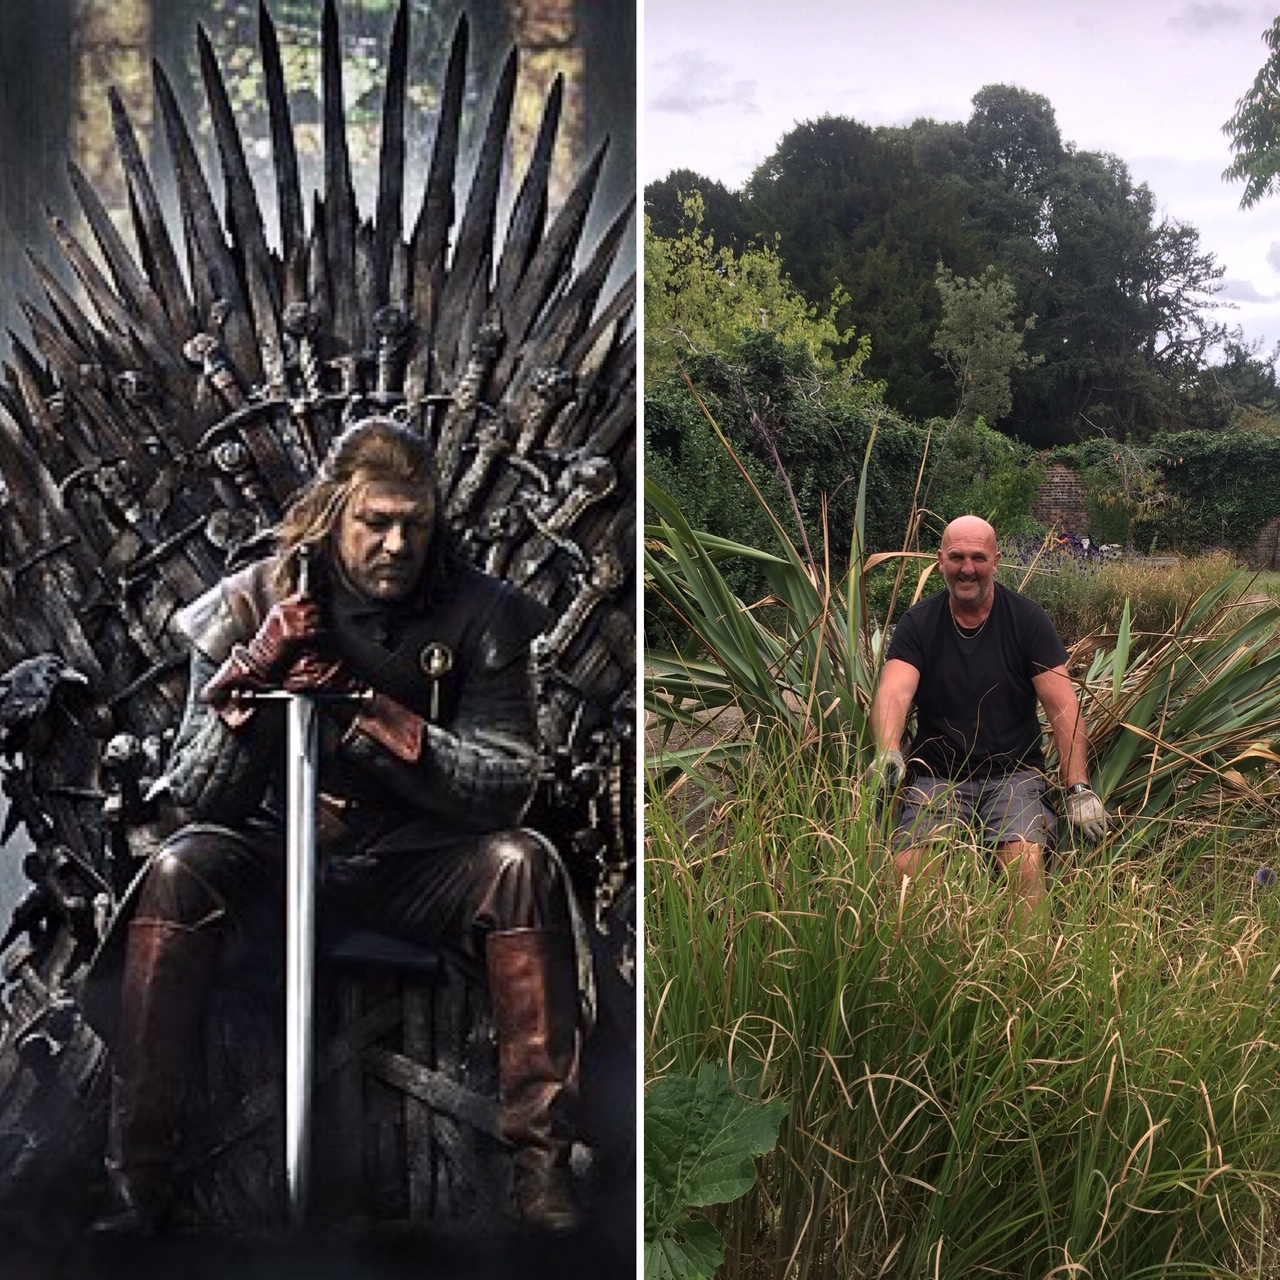 David and the Iron Throne